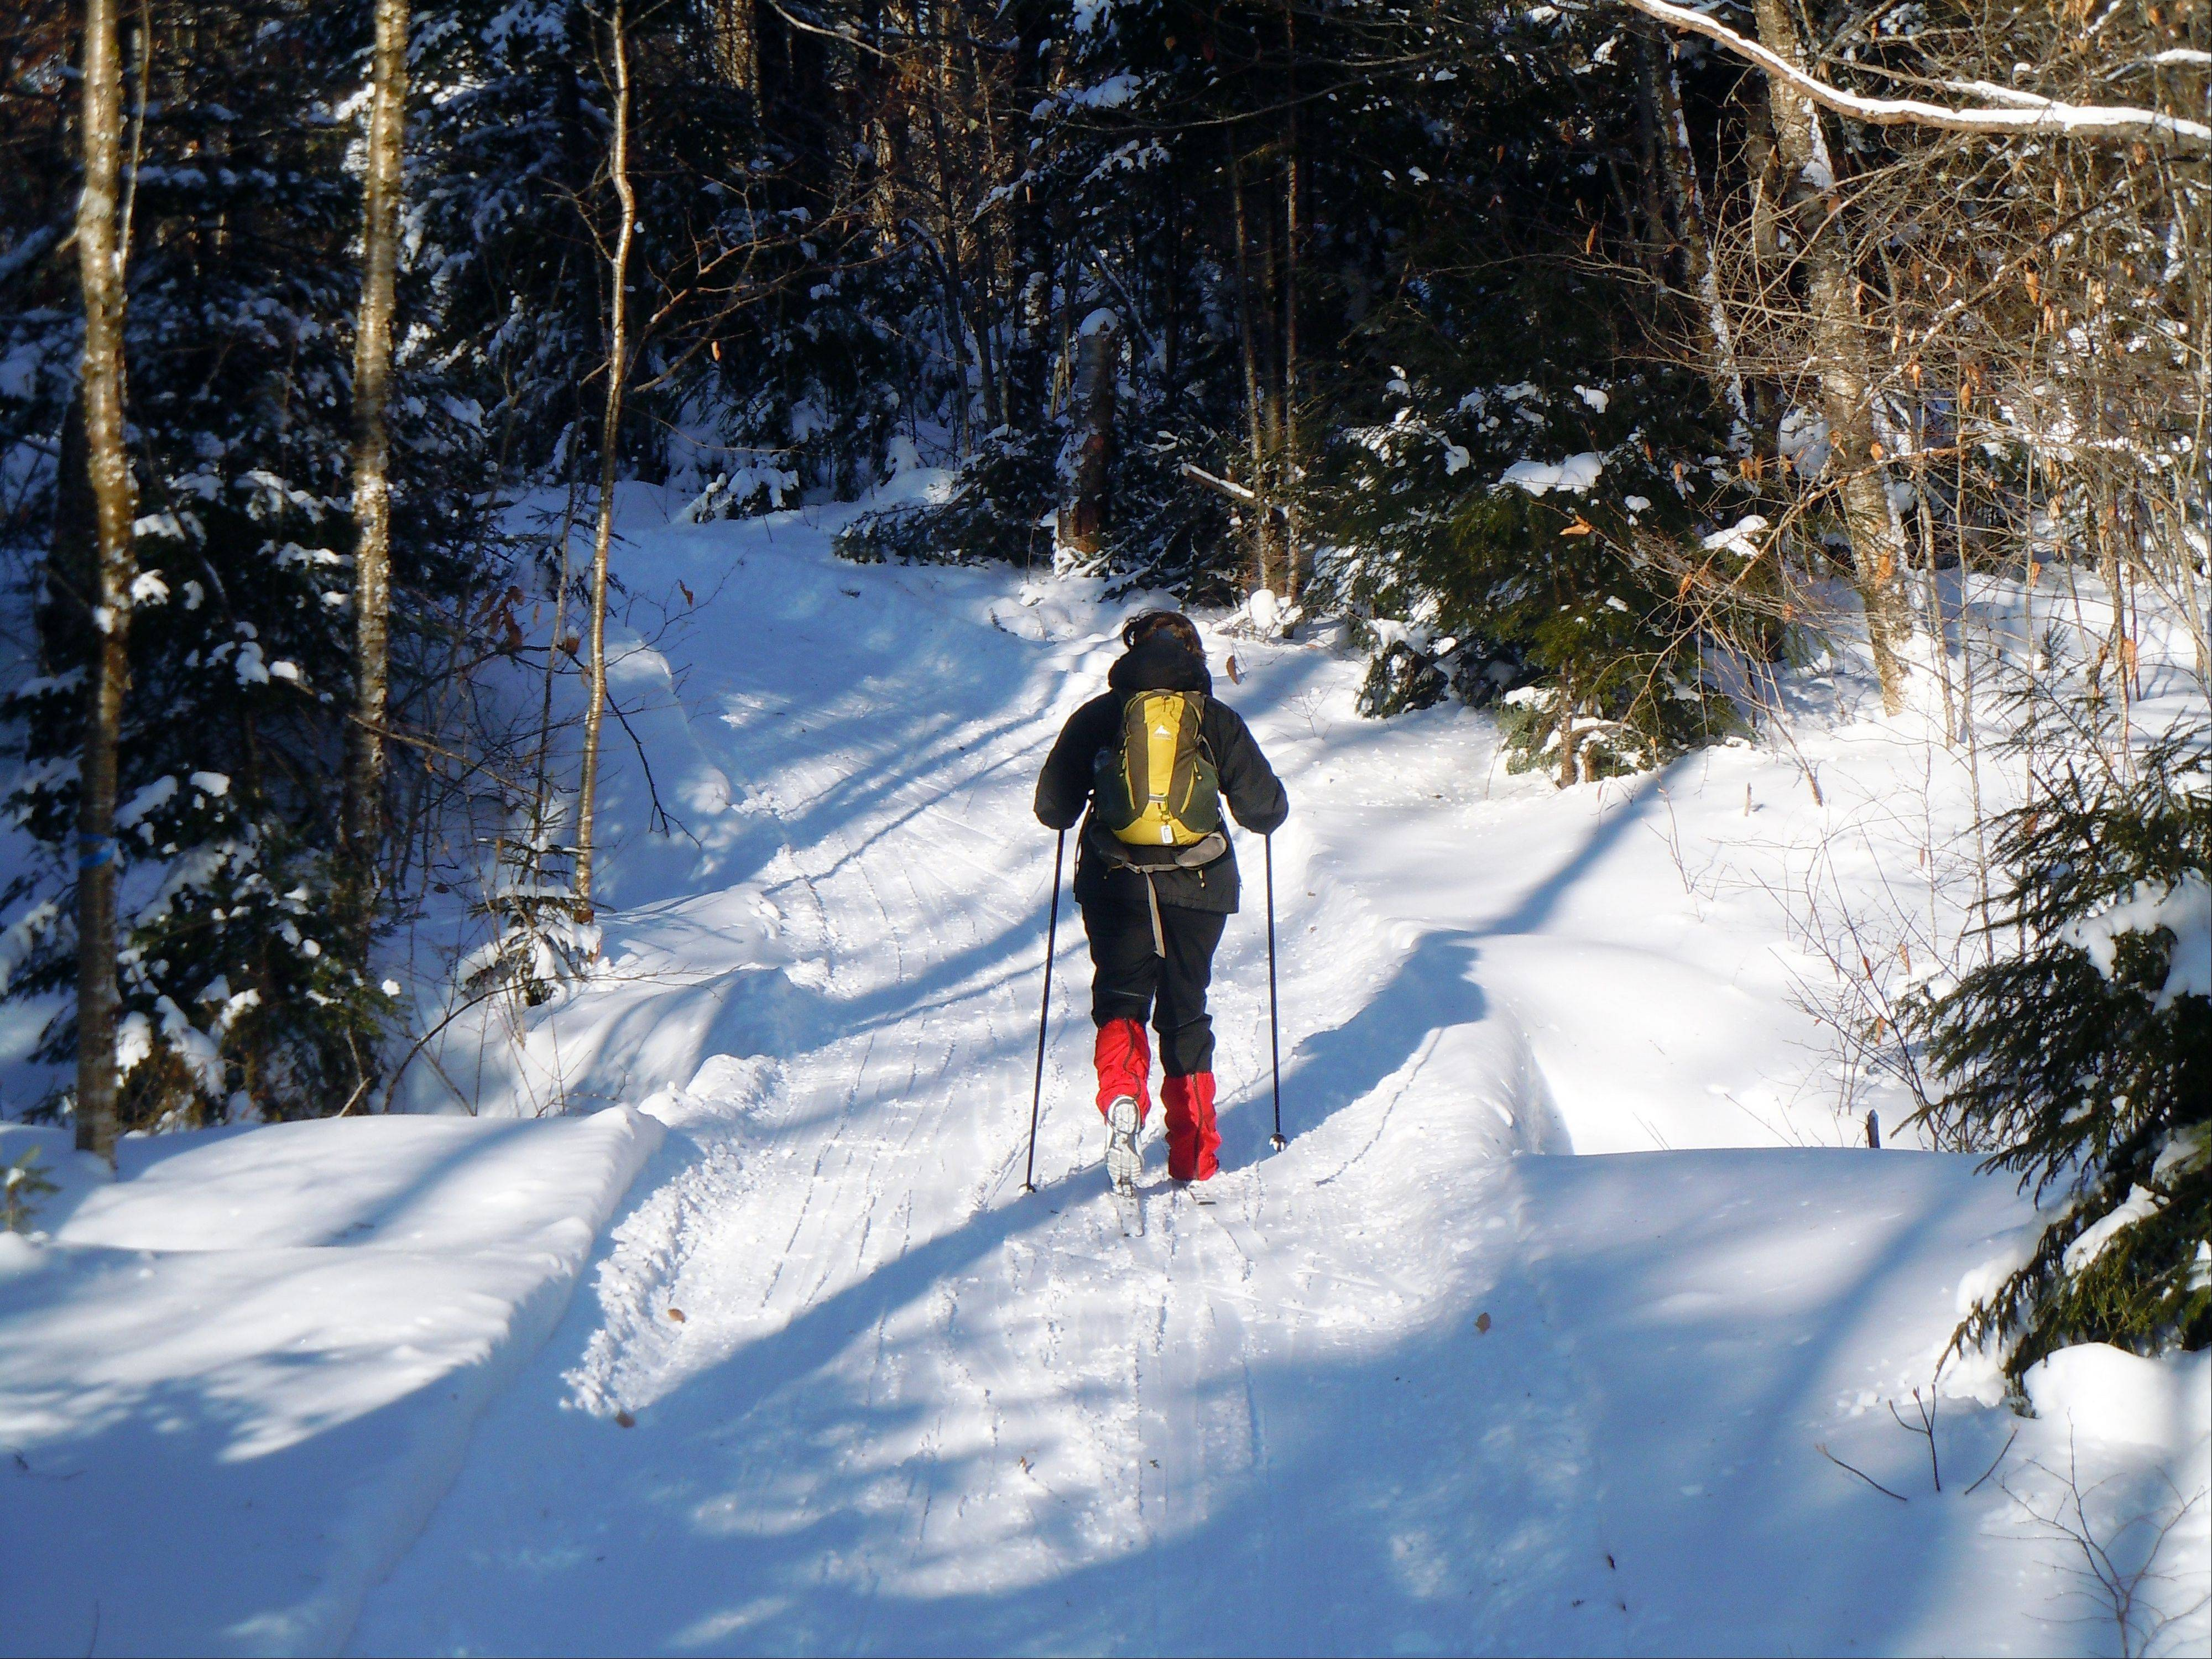 Donna Lawlor cross-country skis on the lodge to lodge trail between camps at the Appalachian Mountain Club's backcountry wilderness lodge near Greenville, Maine.